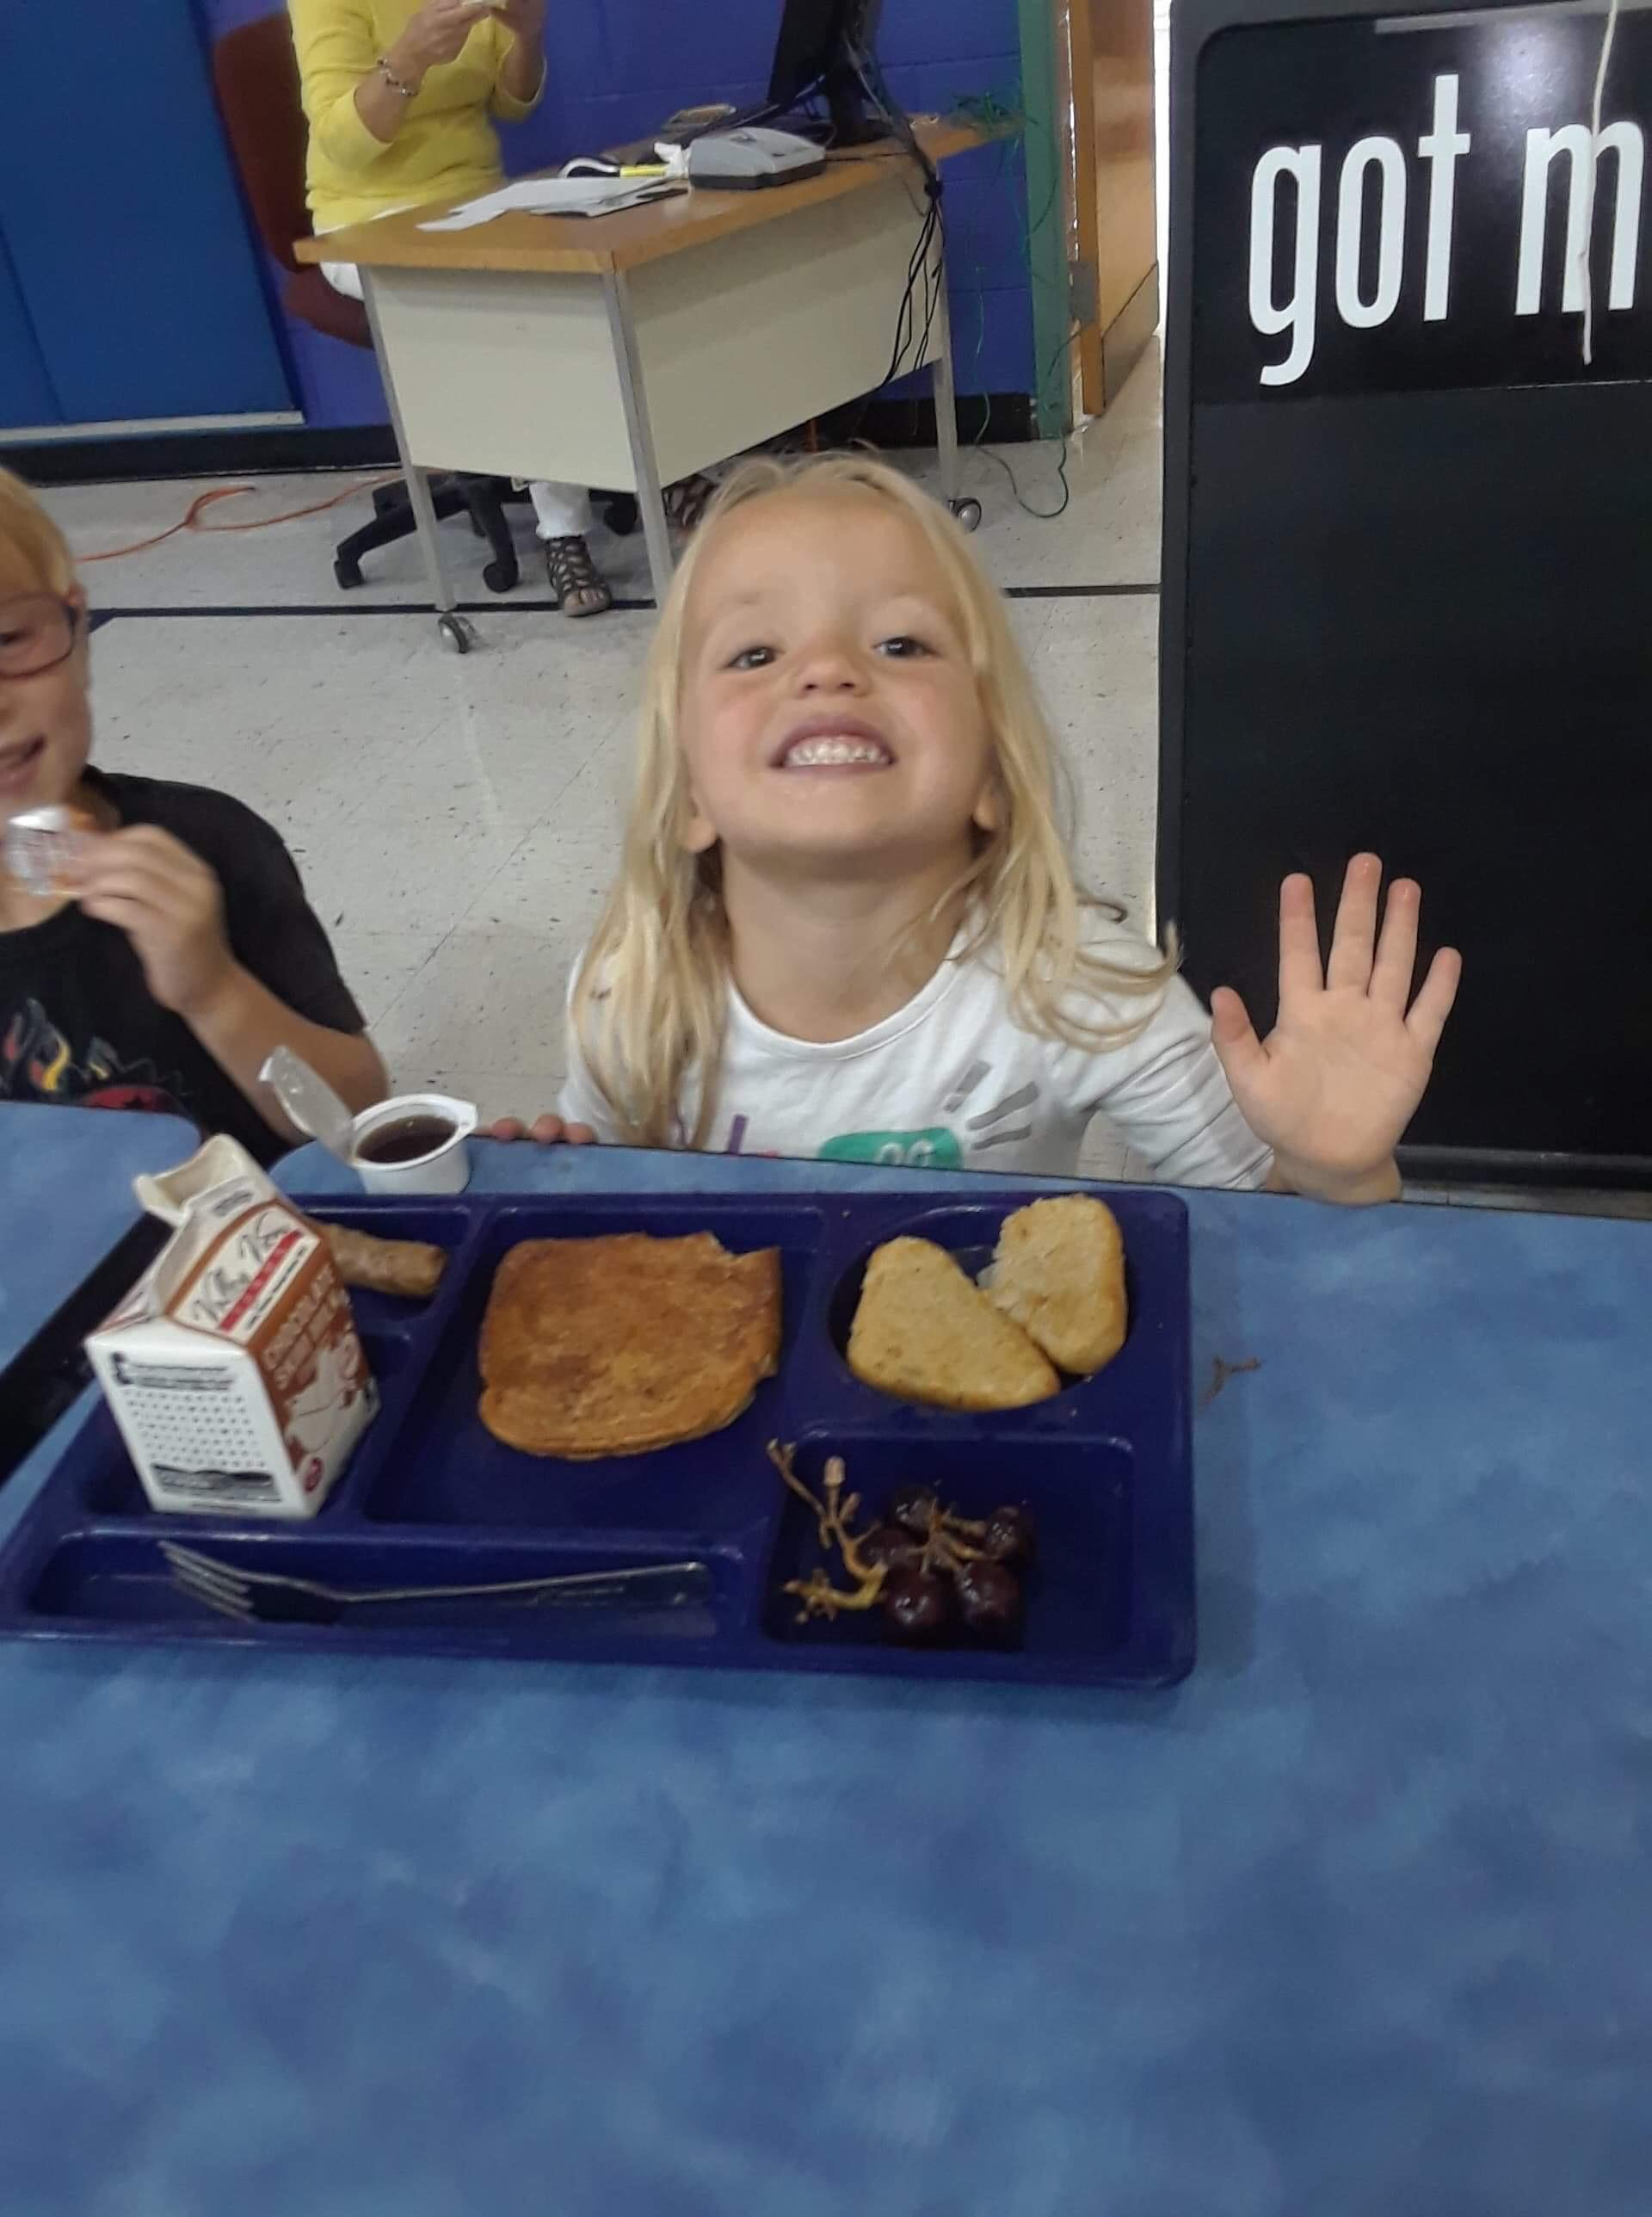 Child enjoying grilled cheese